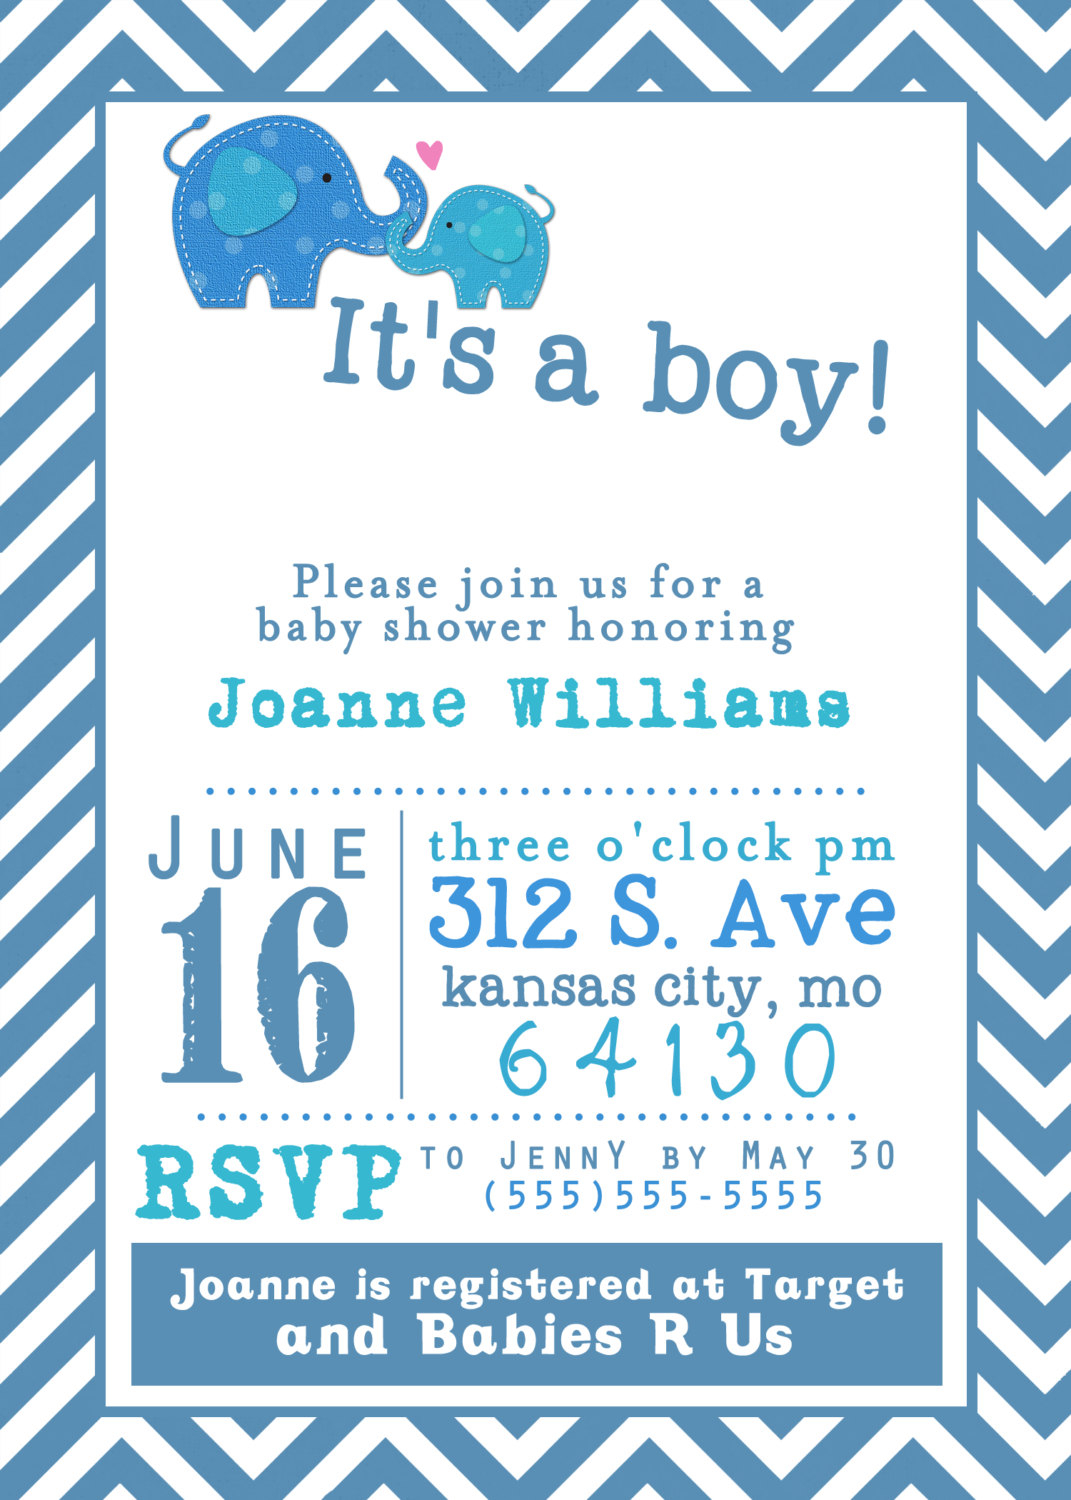 023 Template Ideas Ba Shower Invitation Free Templates Boy Its for measurements 1071 X 1500